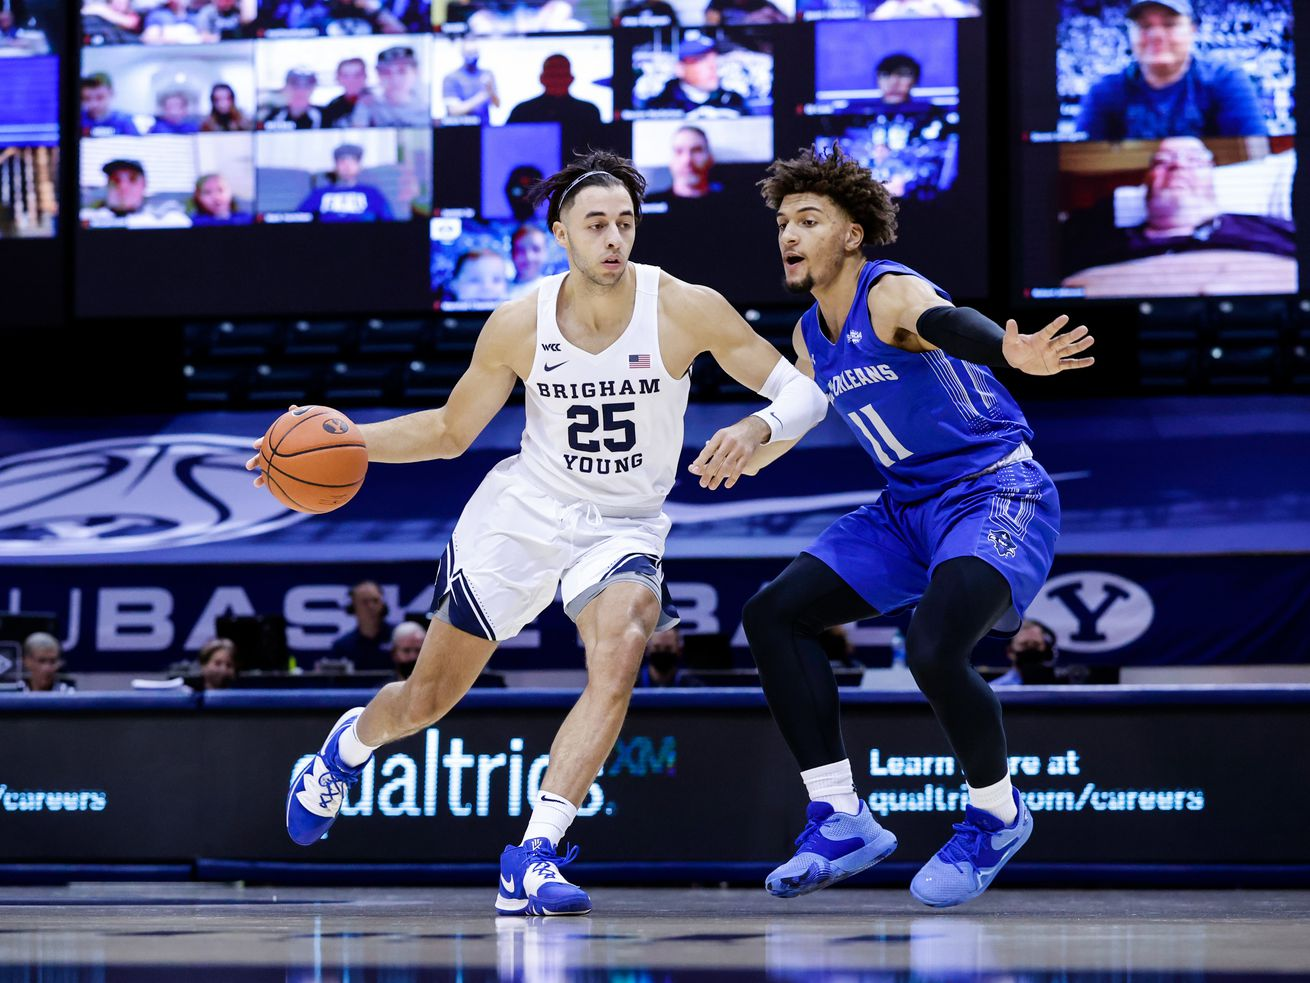 BYU junior forward Gavin Baxter out for the season with ACL injury